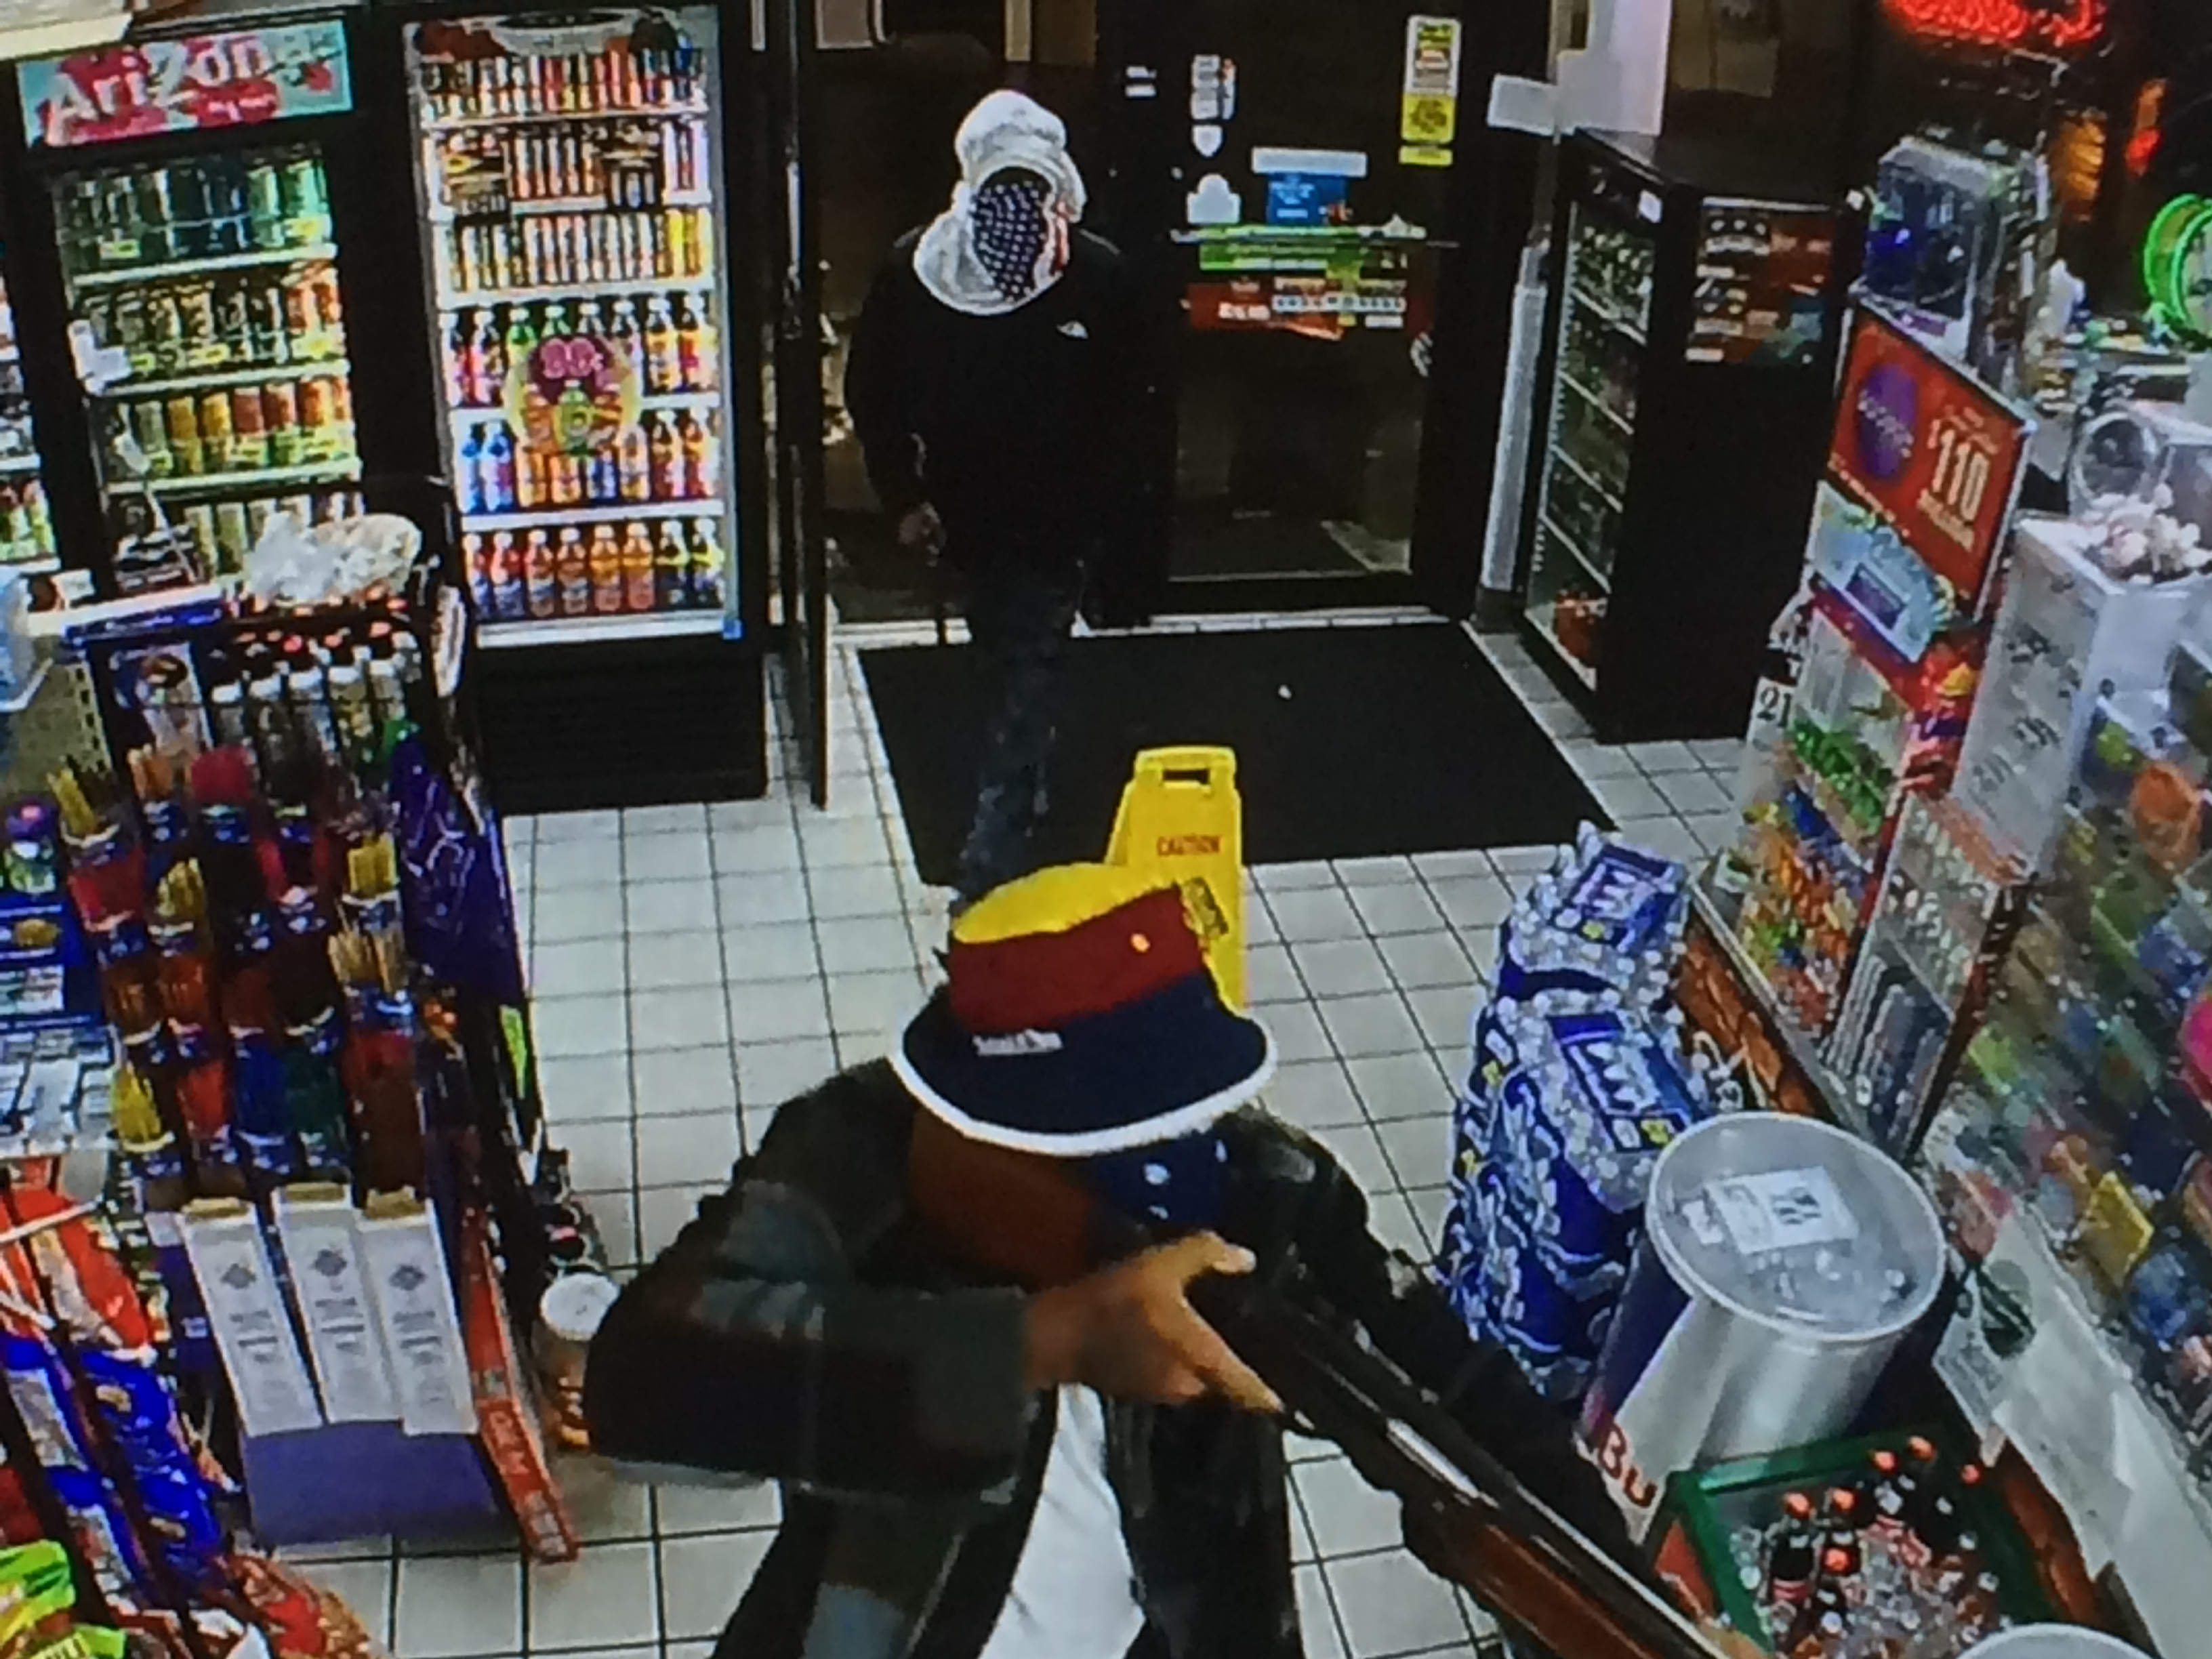 UPDATE: Armed Robbery Reported at University Market next to Chelsea Place Apartments - see video